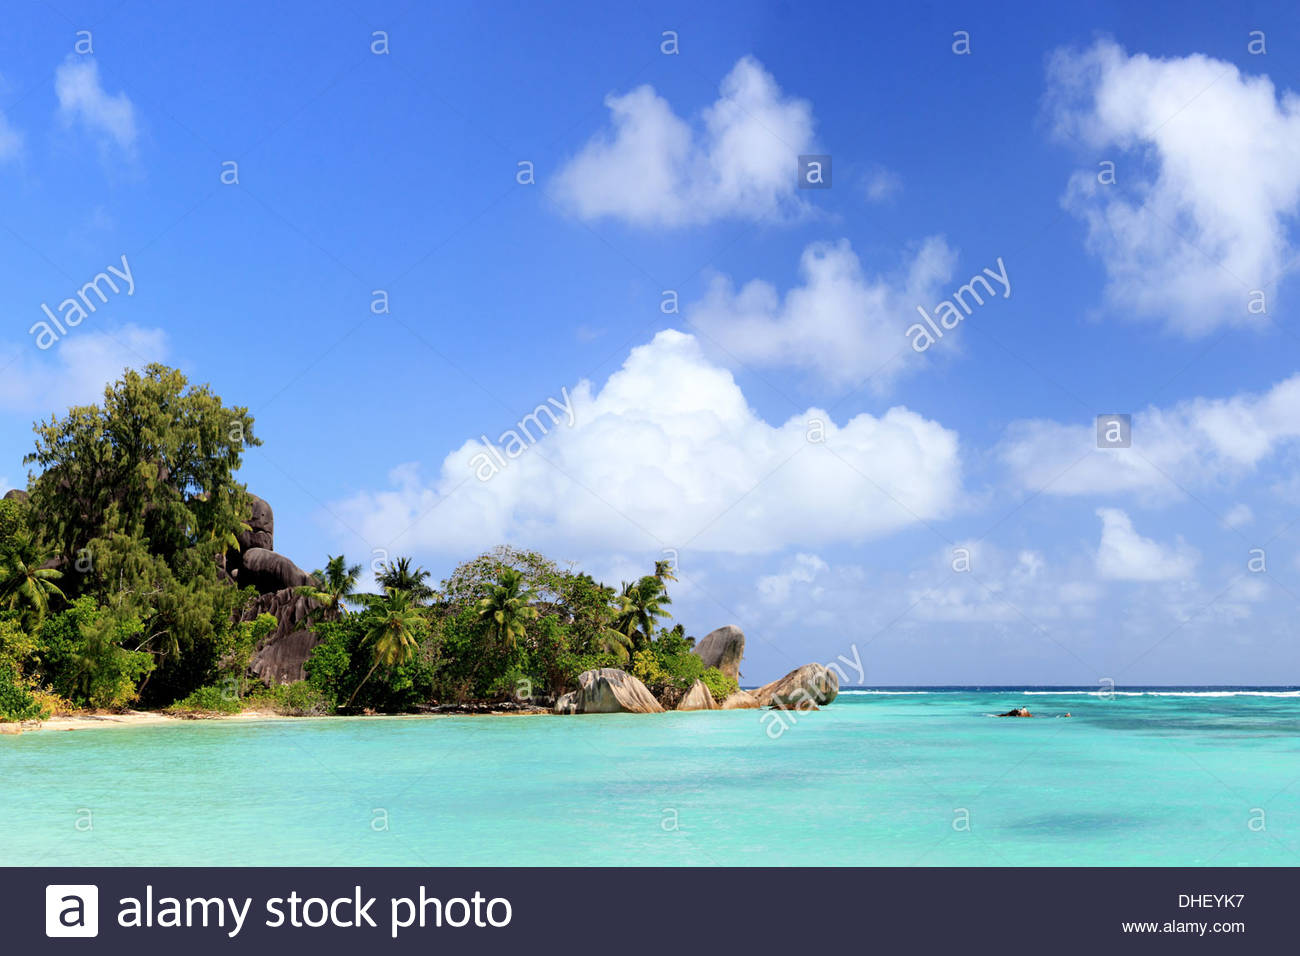 Turquoise sea and trees, La Digue, Seychelles - Stock Image